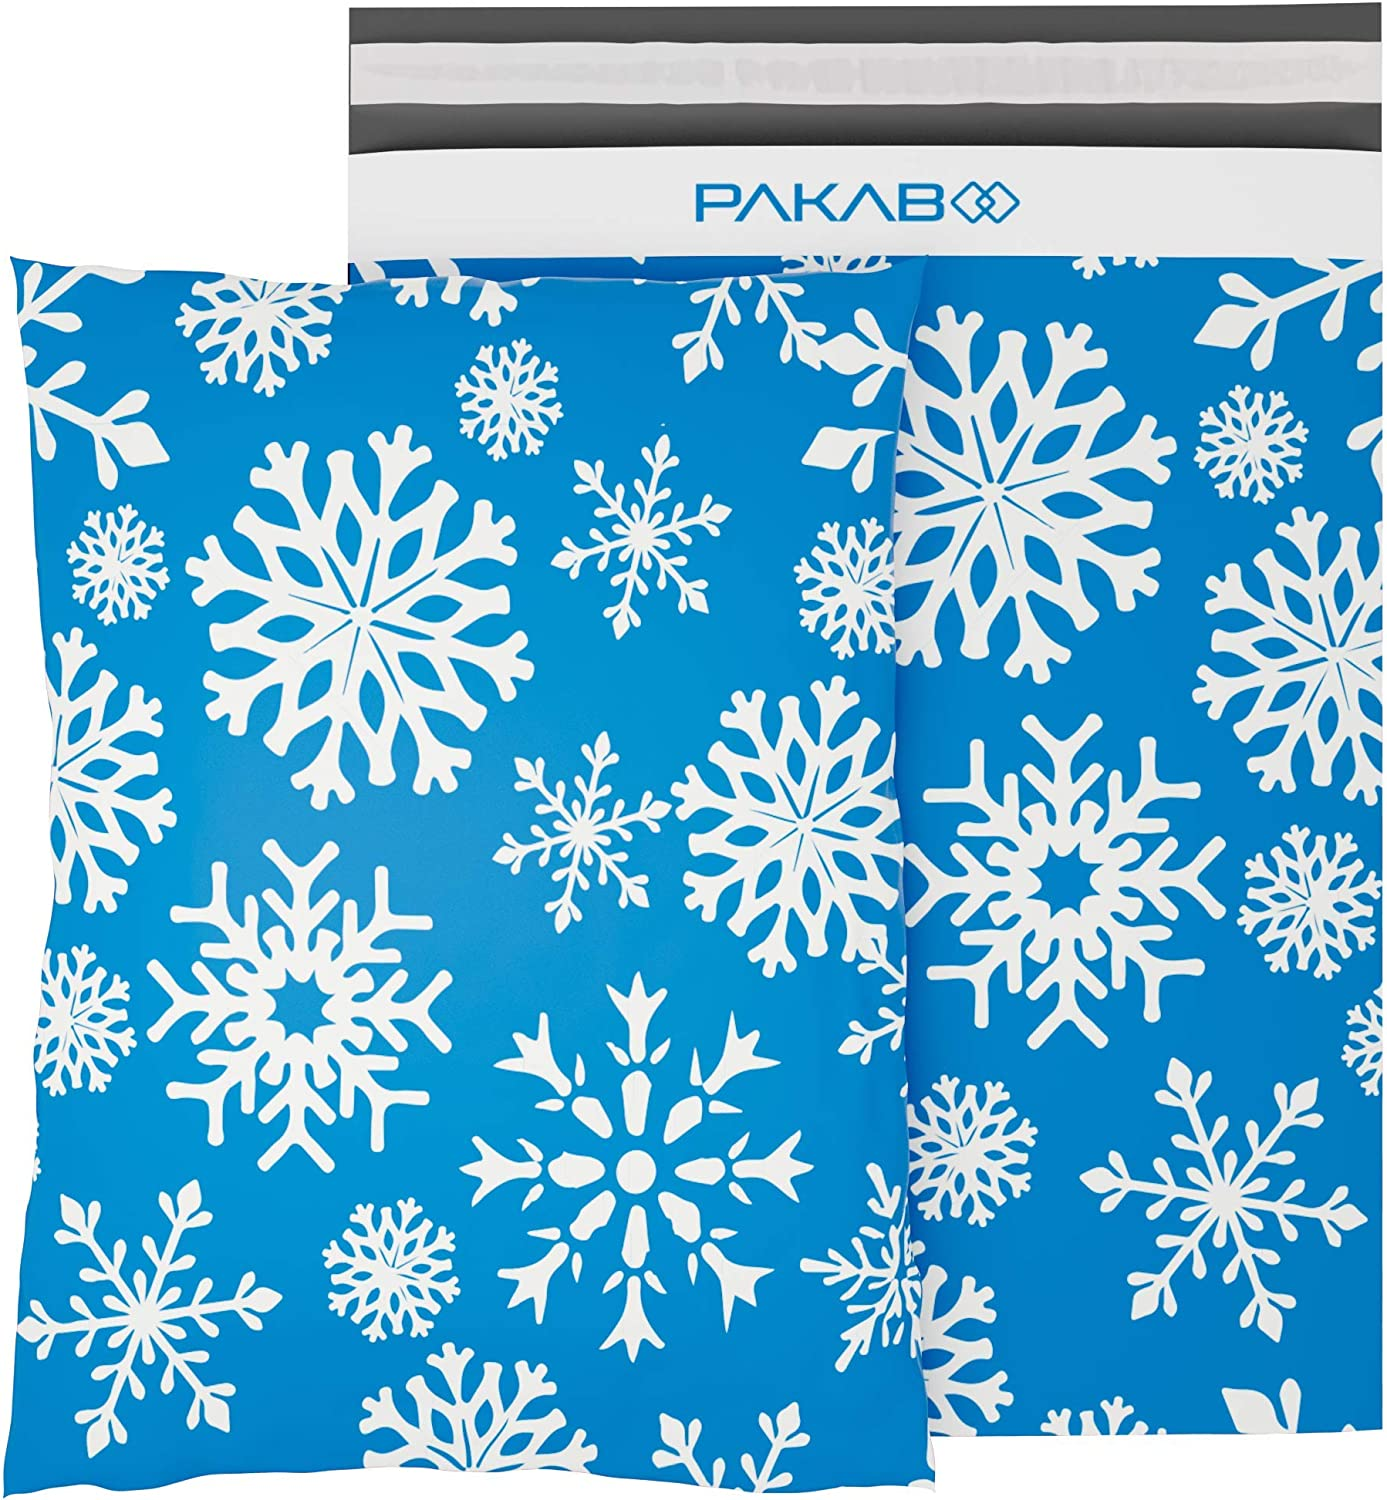 PAKABOO Poly Mailer Shipping Bags Non-Padd 10x13 100 Inch Pack Super Special SALE held Max 87% OFF